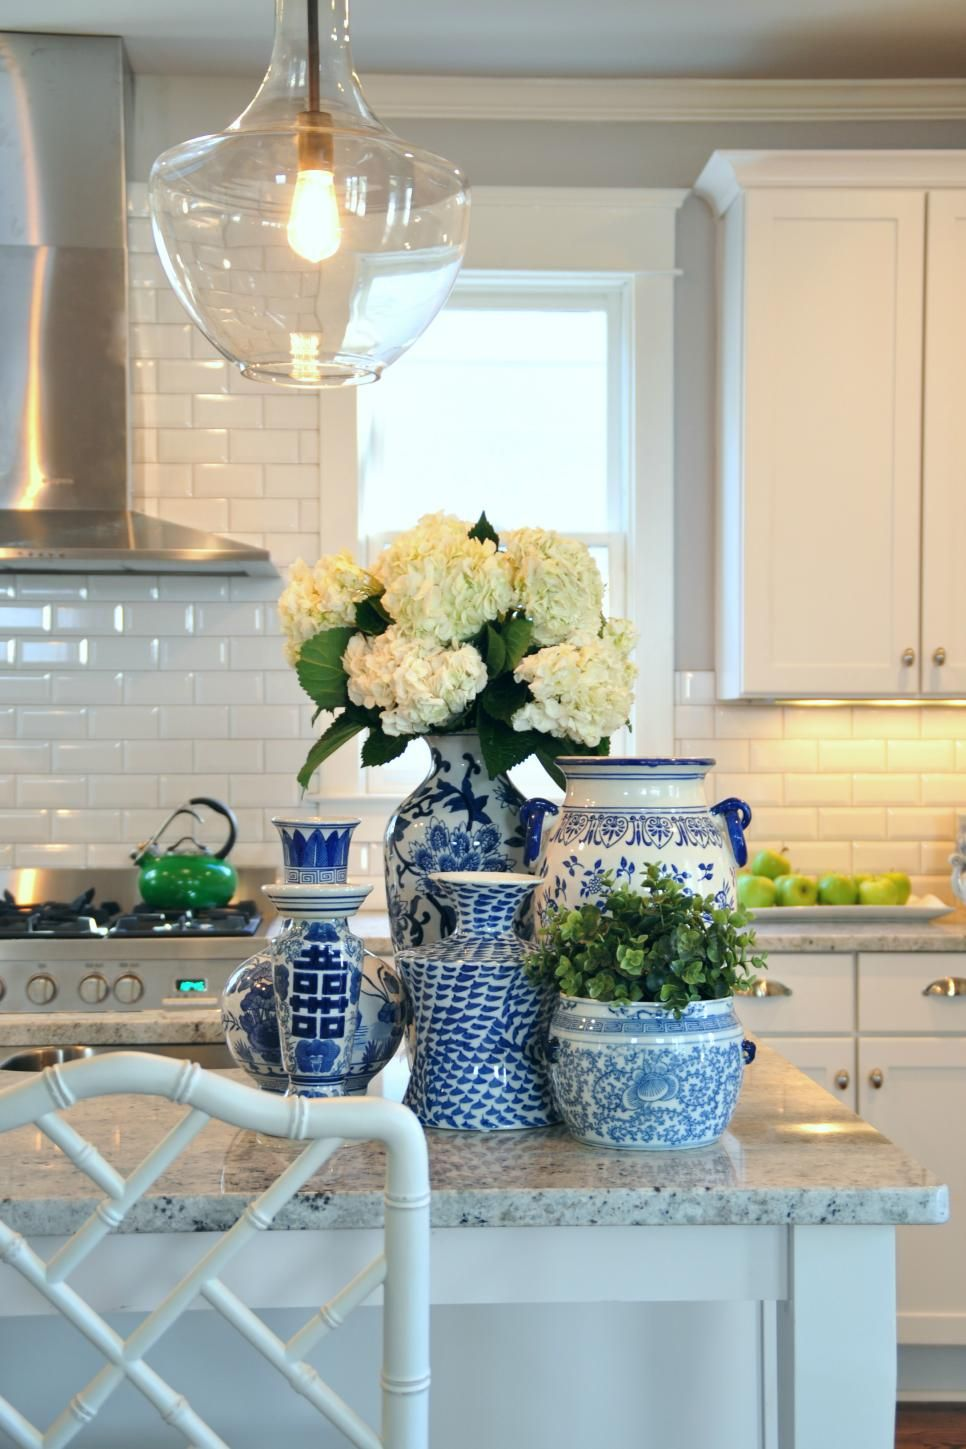 Ways to Save Money to Add or Update a Kitchen Island or Bar     How to save money to add  update and decorate an island or bar